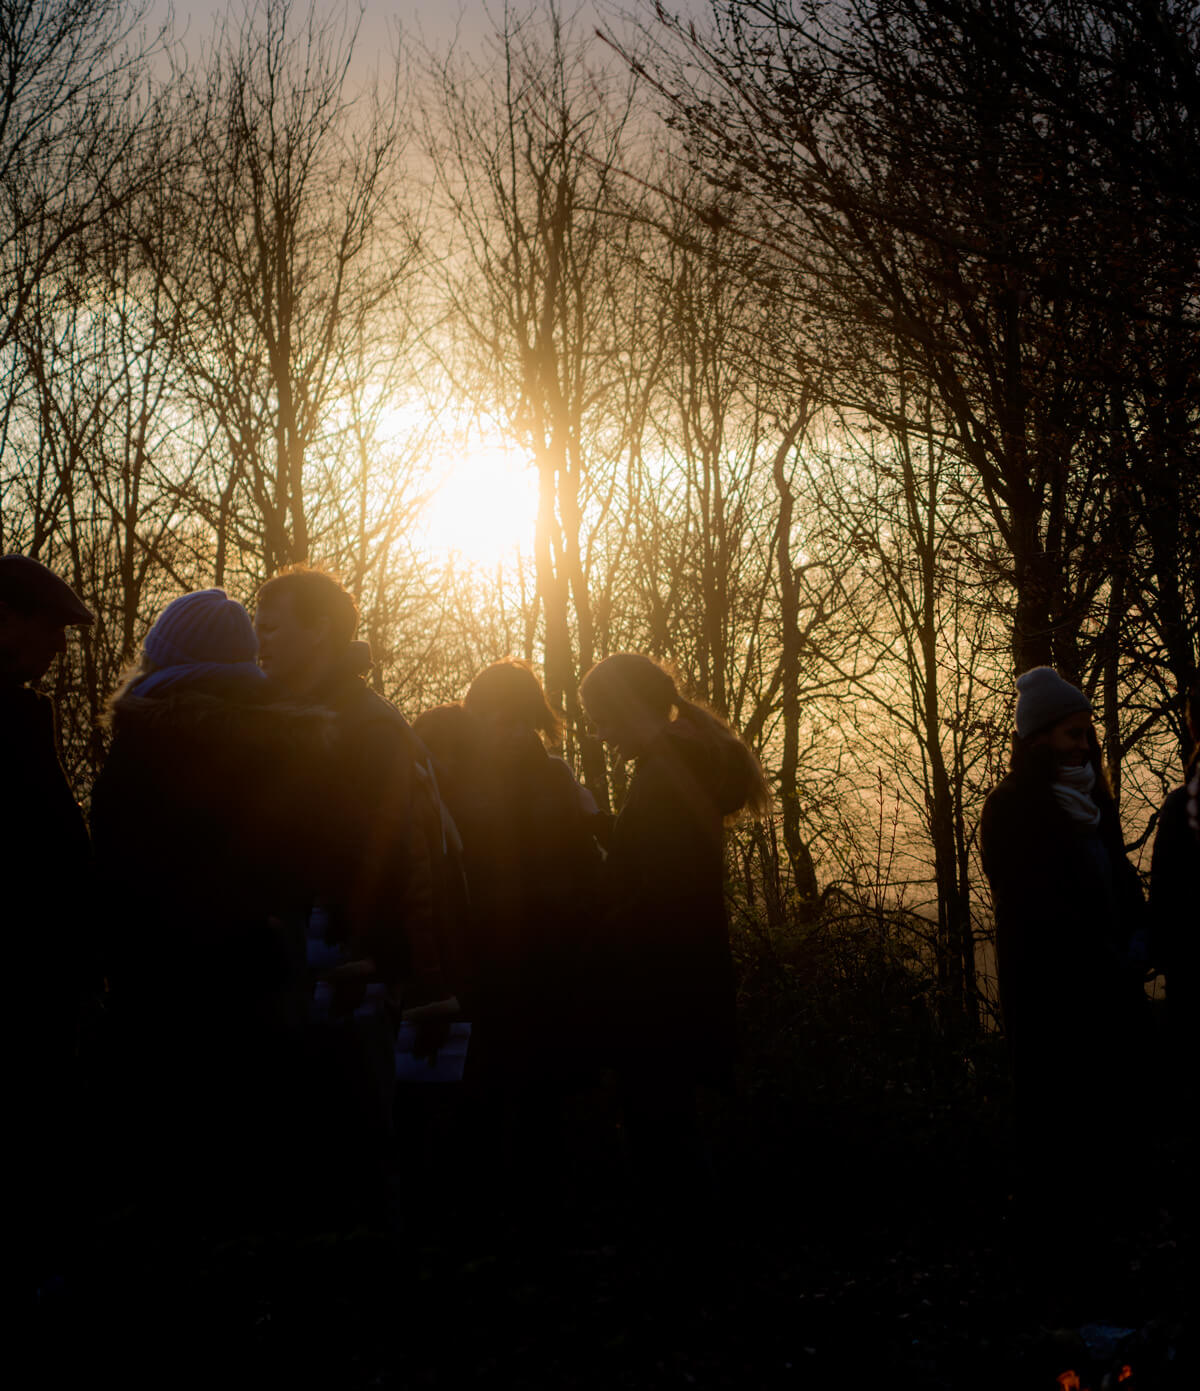 Prayer at sundown at Chanctonbury Ring